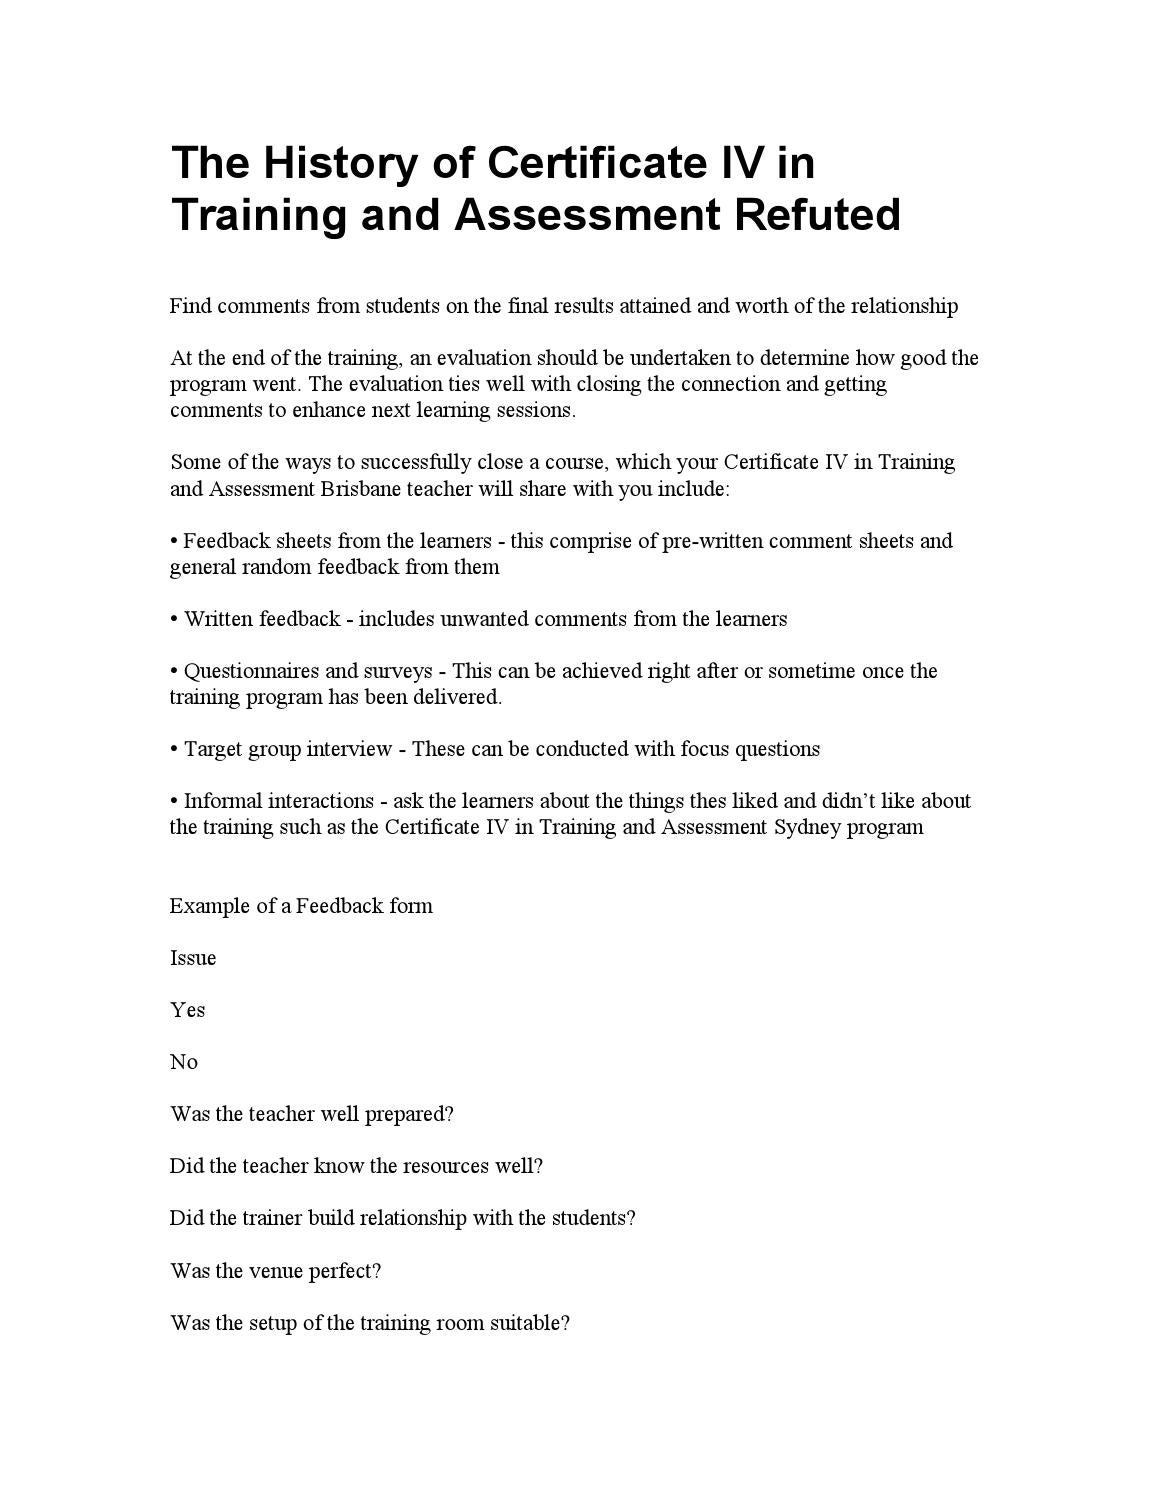 Certificate IV in Training and Assessment by manzoor - issuu